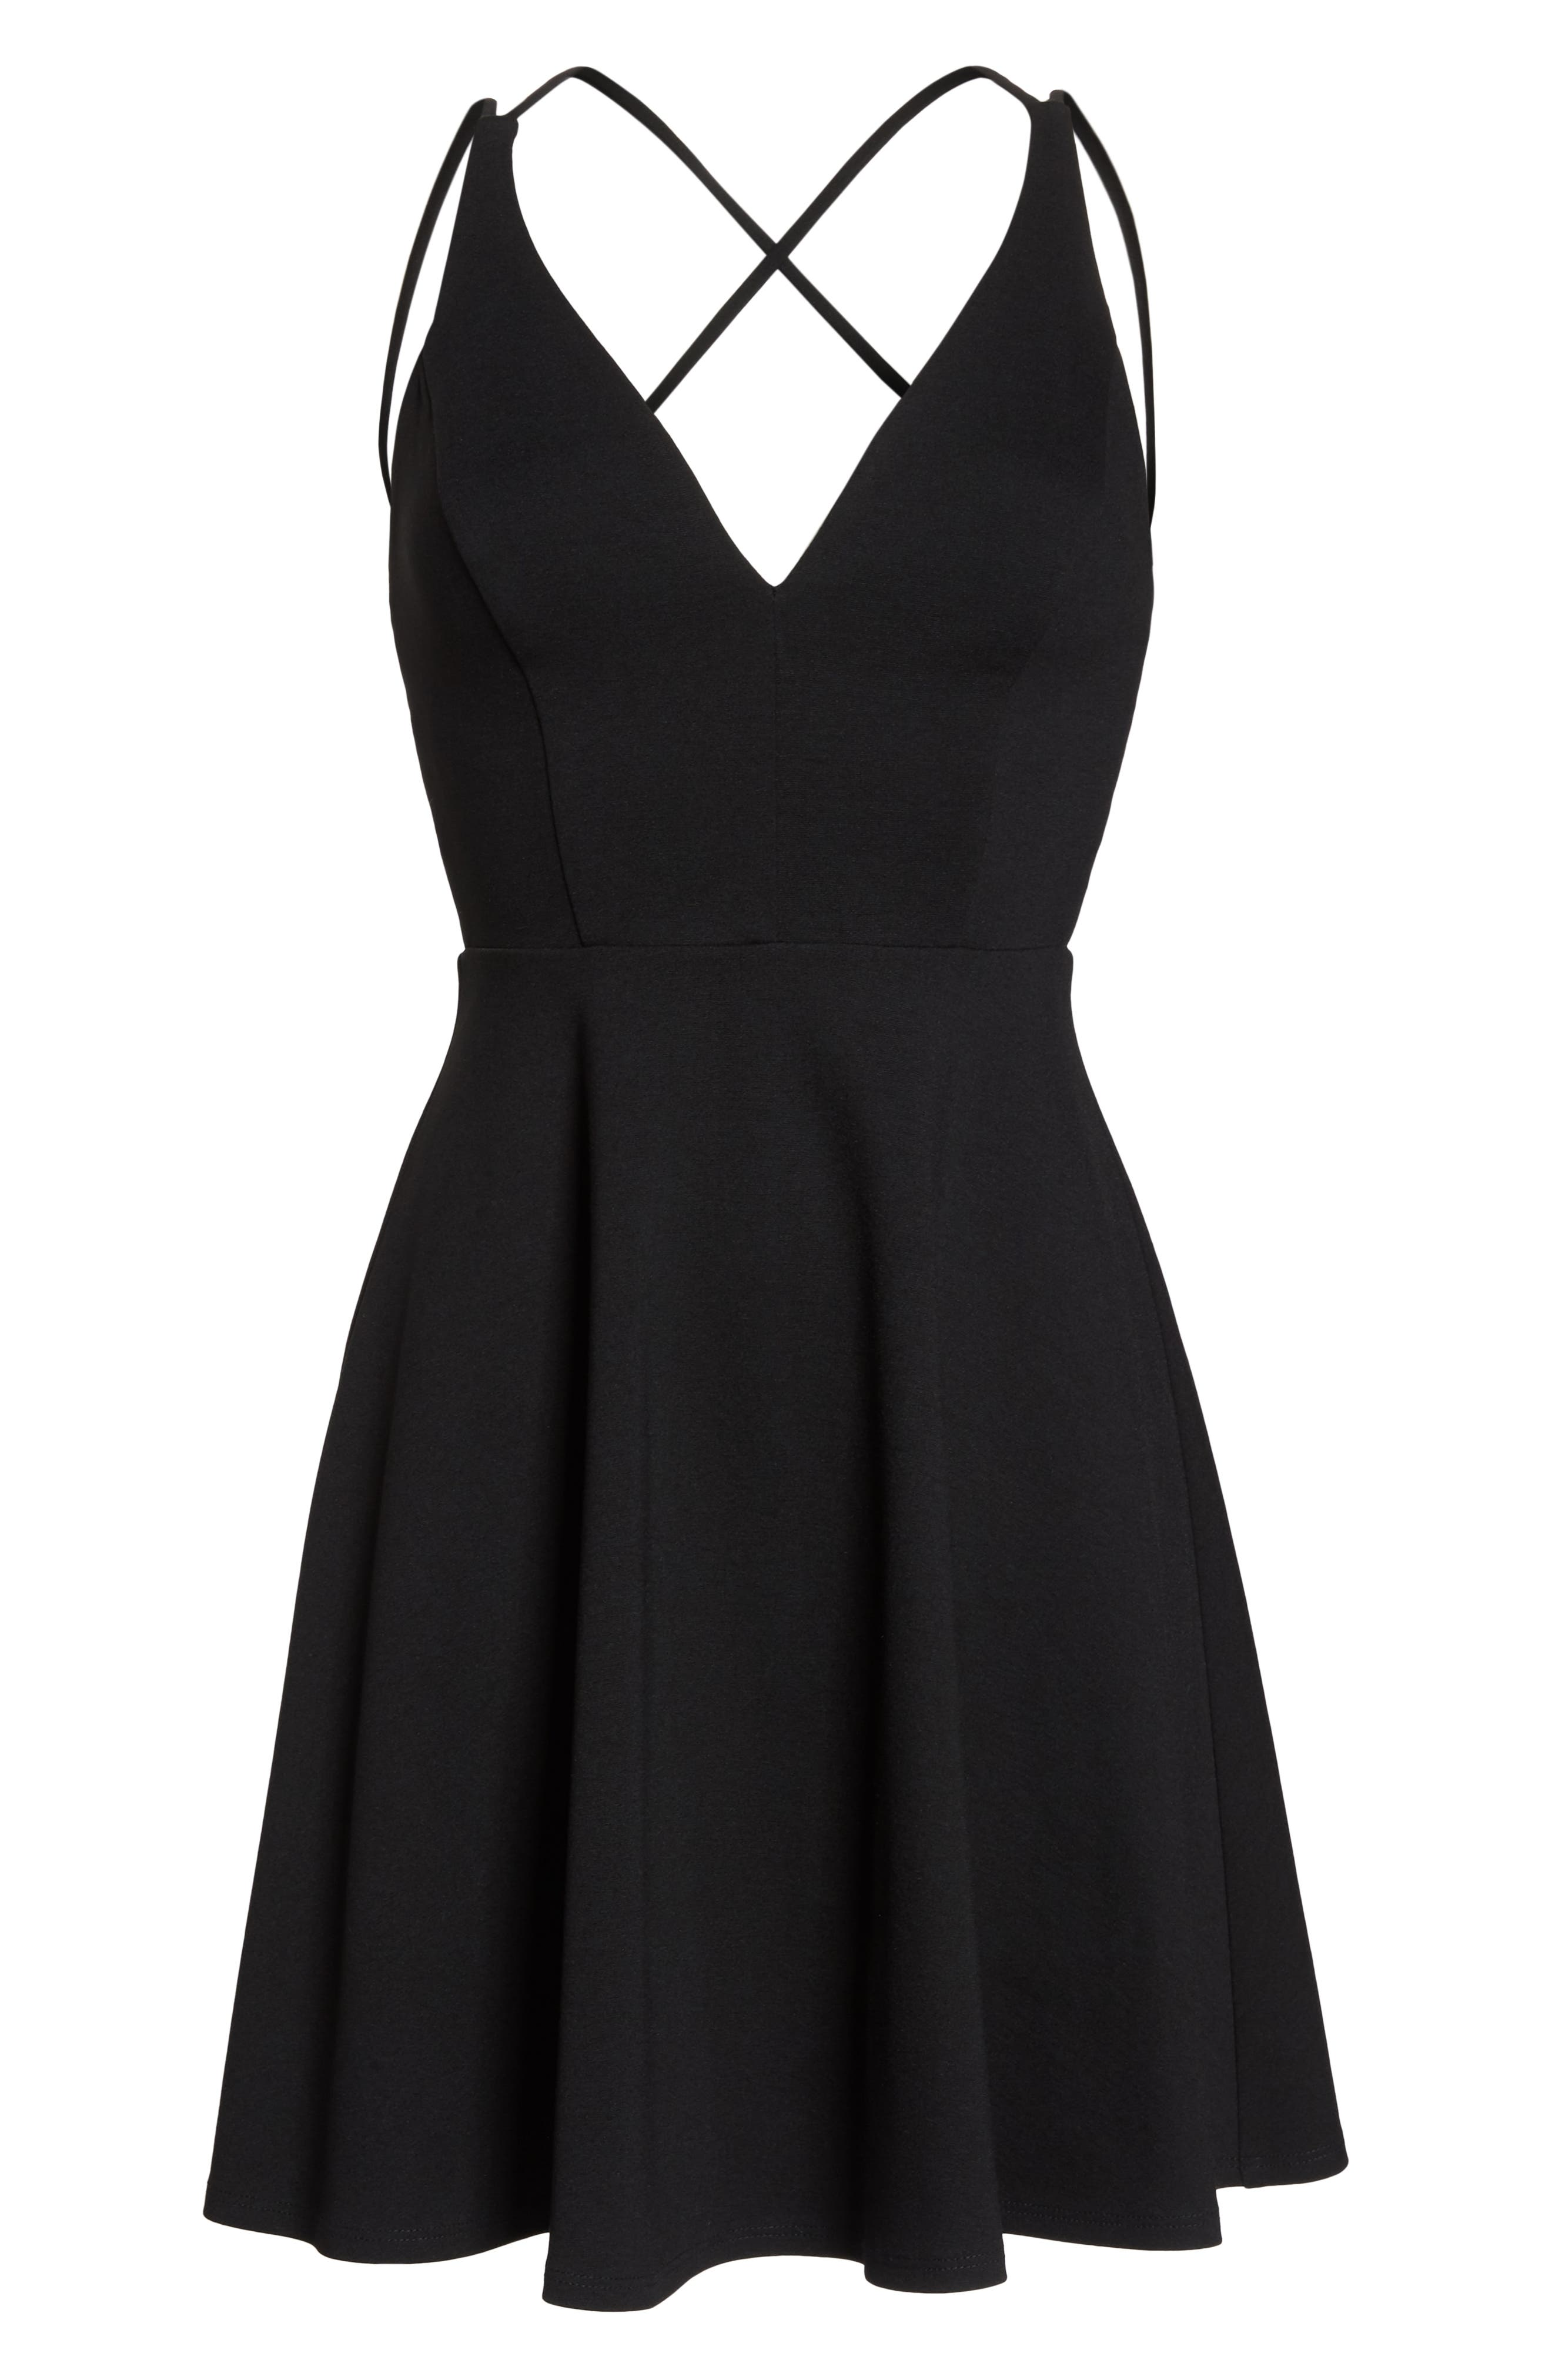 LULUS, Believe in Love Strappy Back Skater Dress, Alternate thumbnail 7, color, BLACK